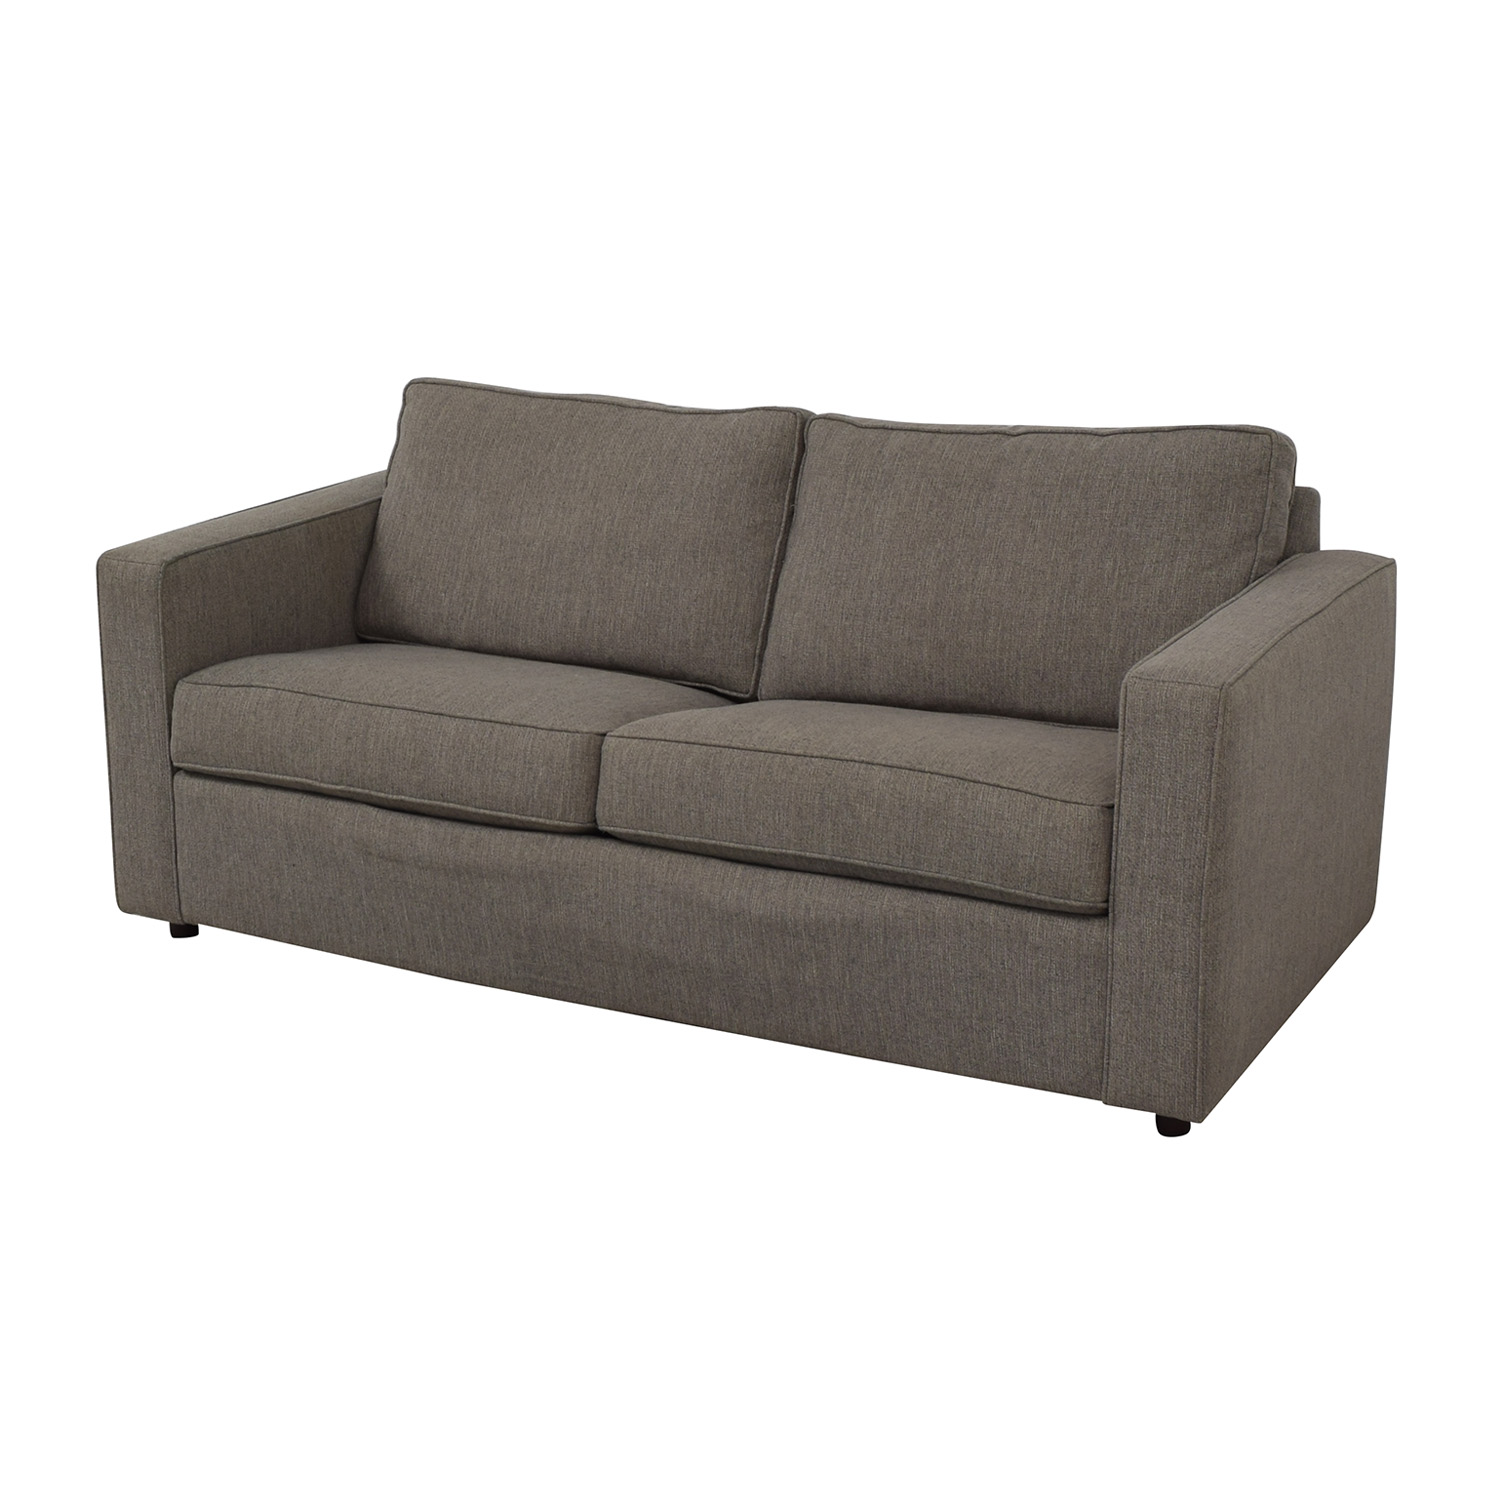 Arhaus Arhaus Filmore Full Sleeper Sofa on sale